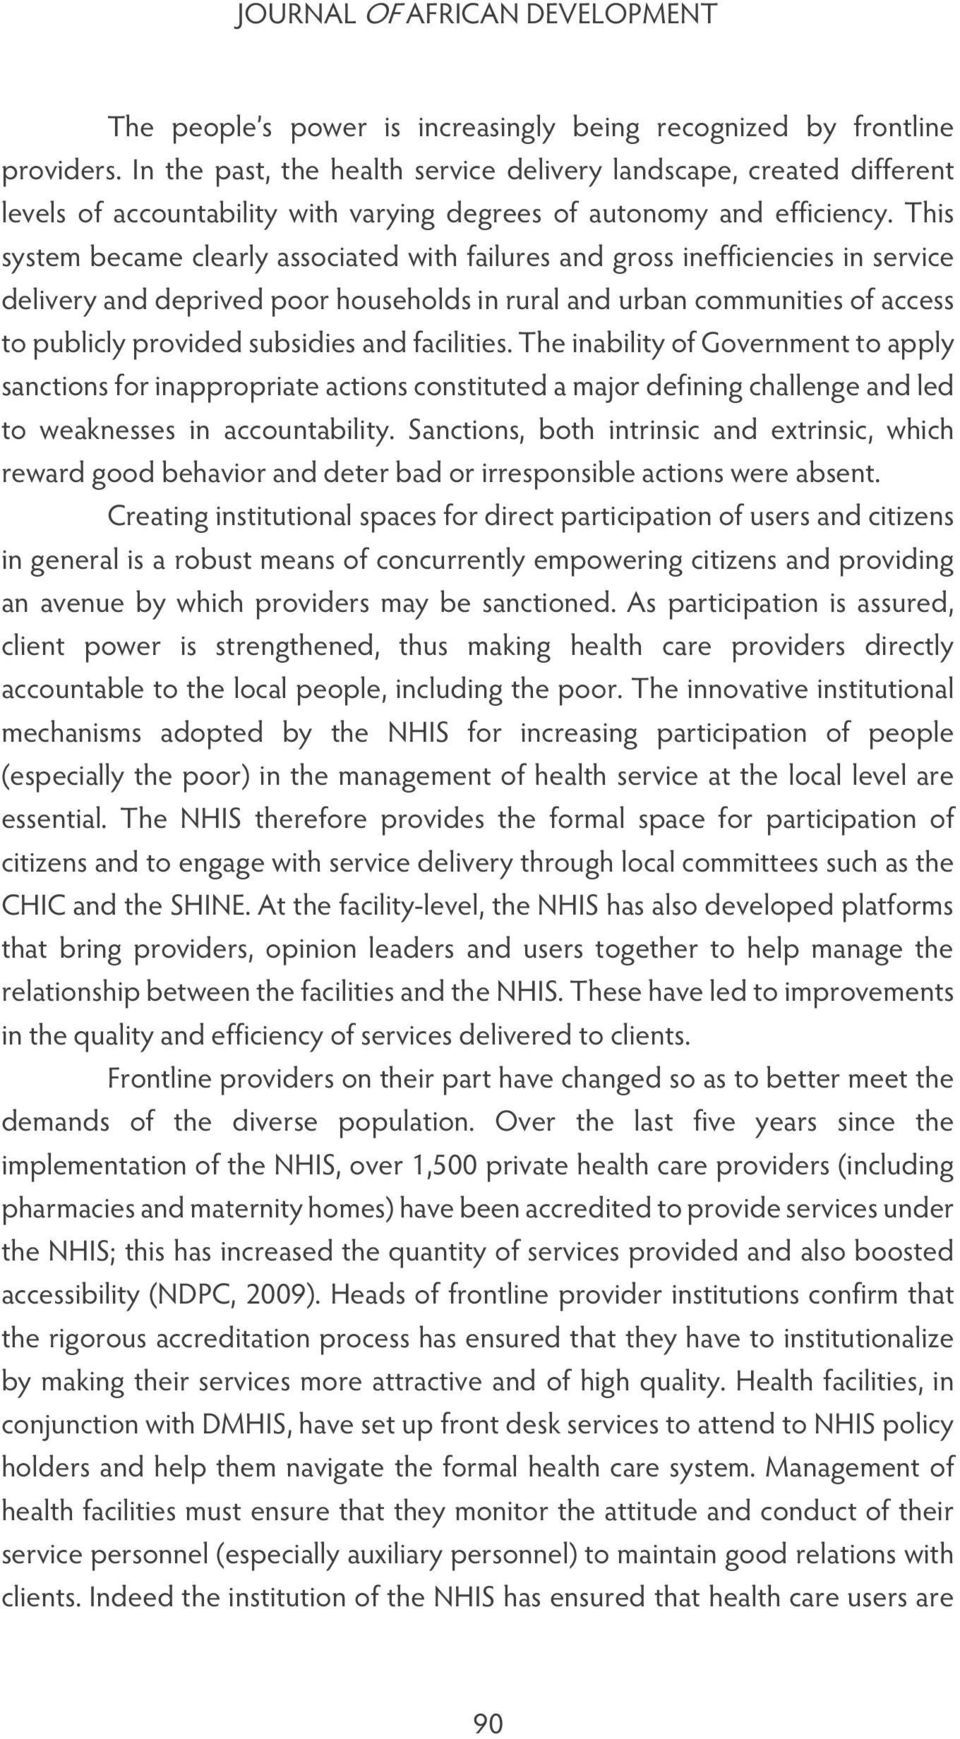 This system became clearly associated with failures and gross inefficiencies in service delivery and deprived poor households in rural and urban communities of access to publicly provided subsidies